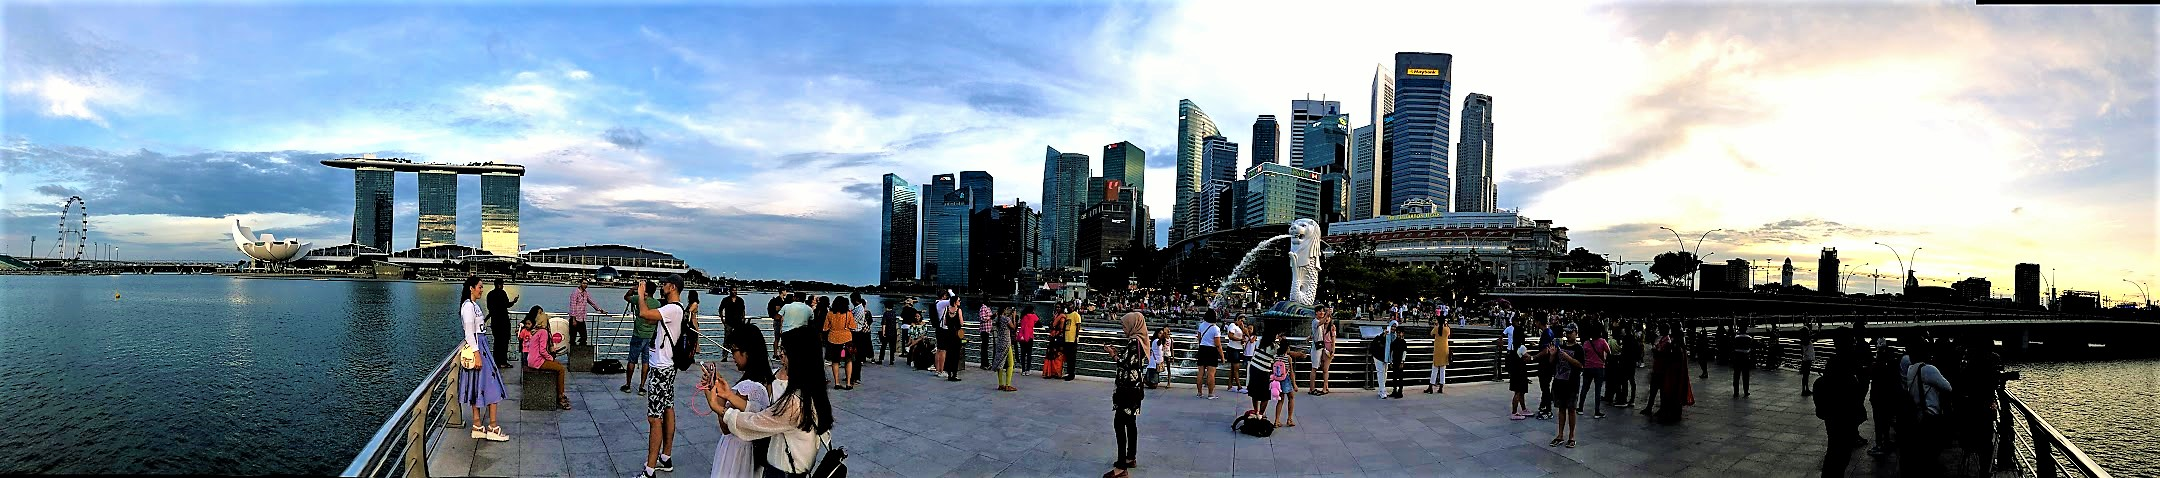 Panorama of Singapore Merlion and Marina Bay Sands